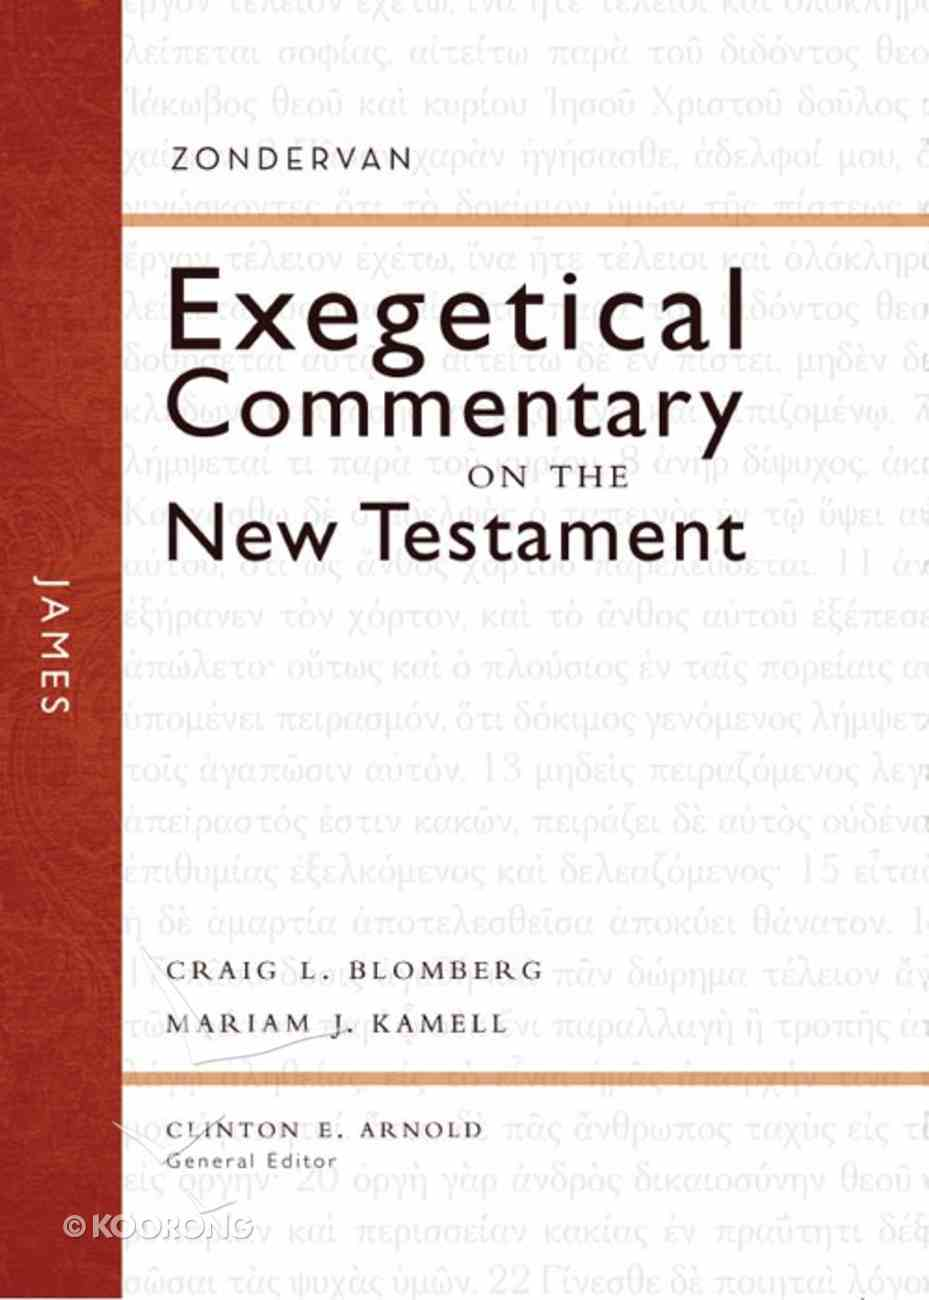 James (Zondervan Exegetical Commentary Series On The New Testament) eBook